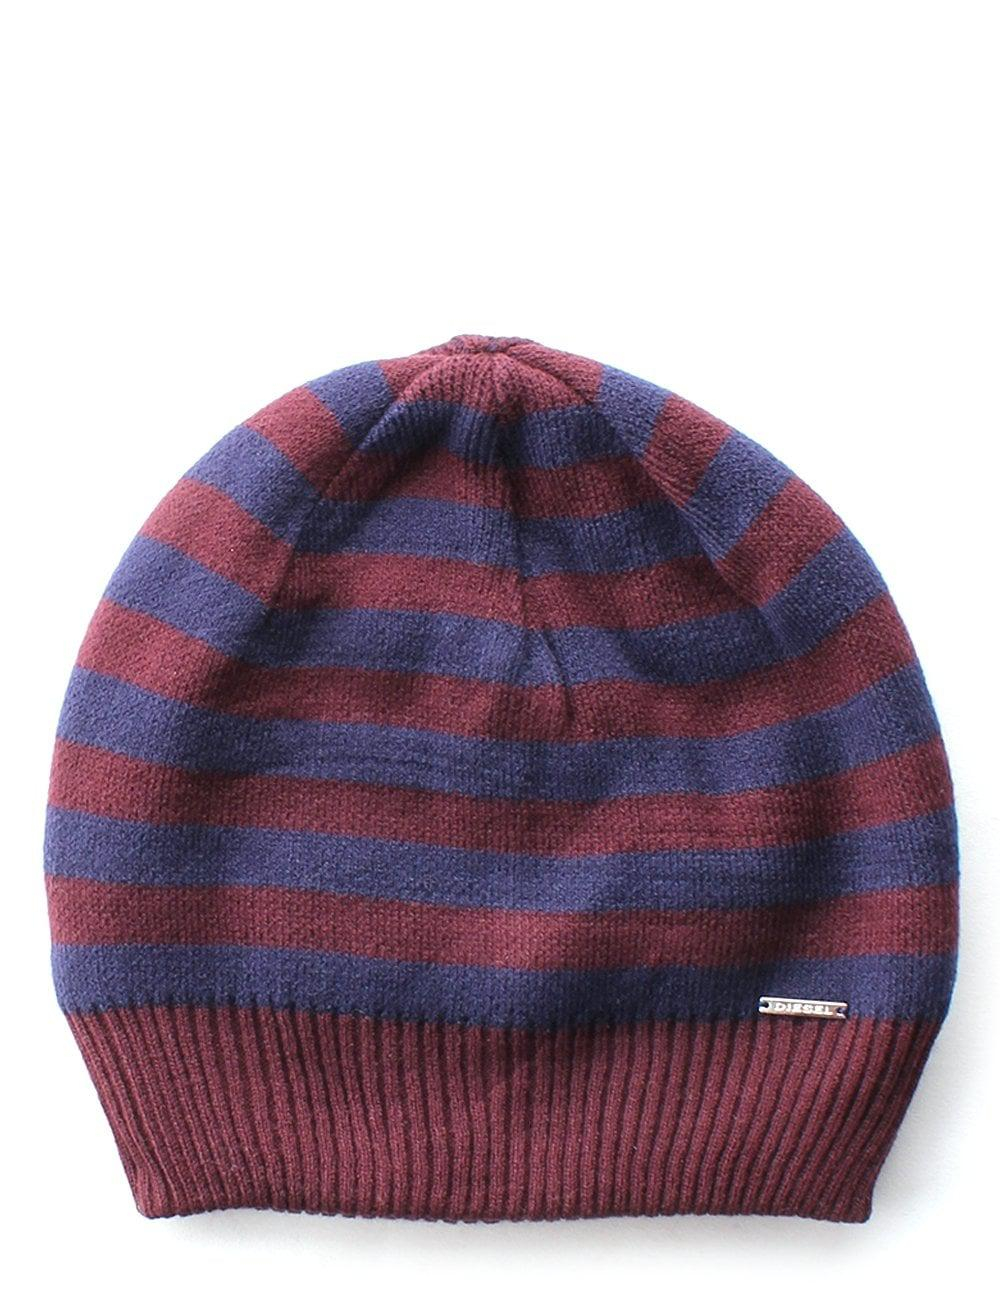 Knitted Mens Hat Patterns Mens Striped Knitted Hat Pattern